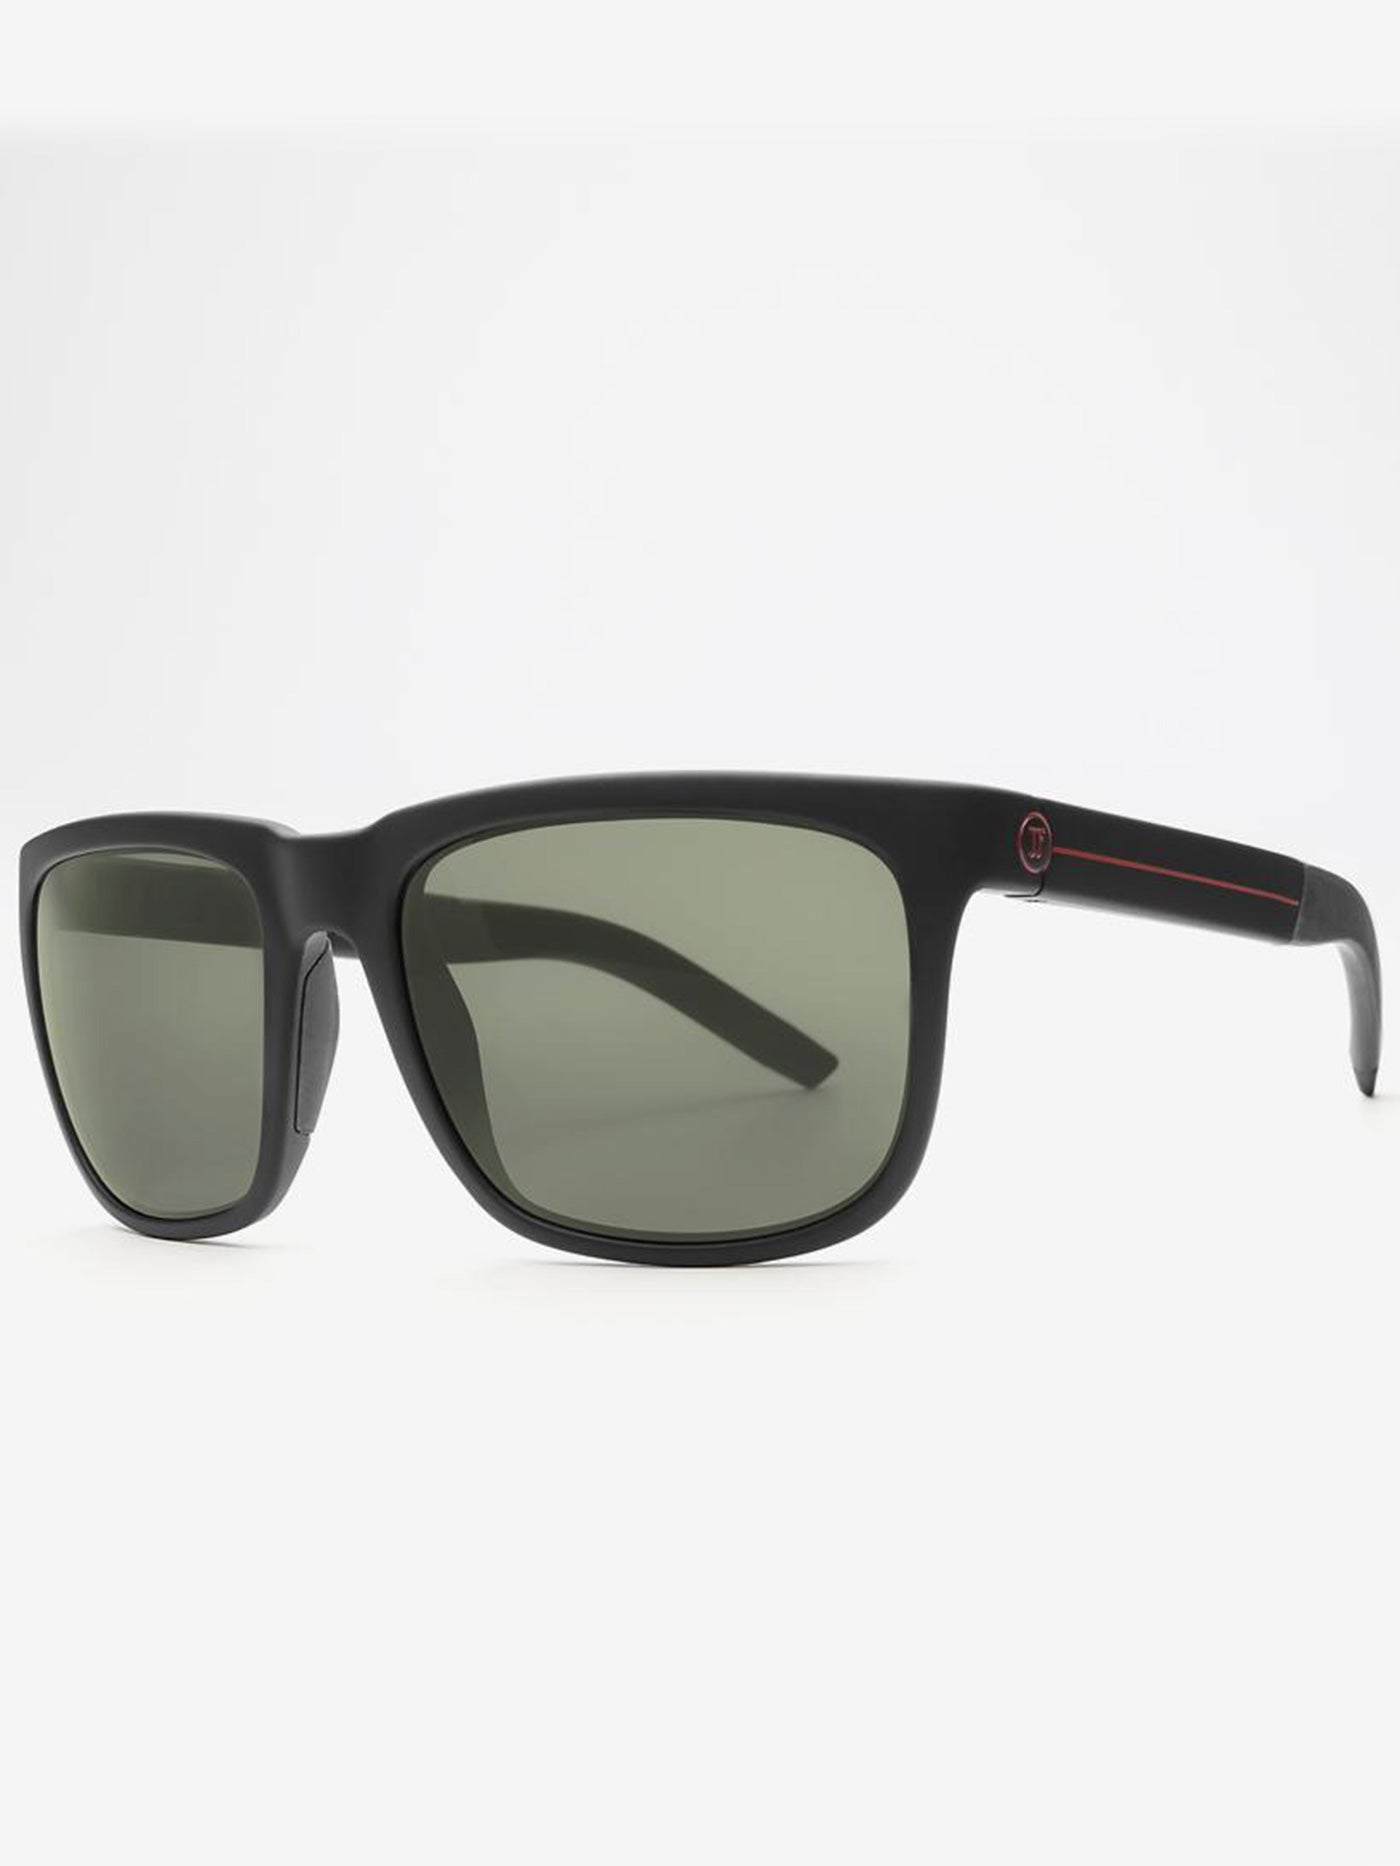 JJF BLACK/GREY POL PLUS